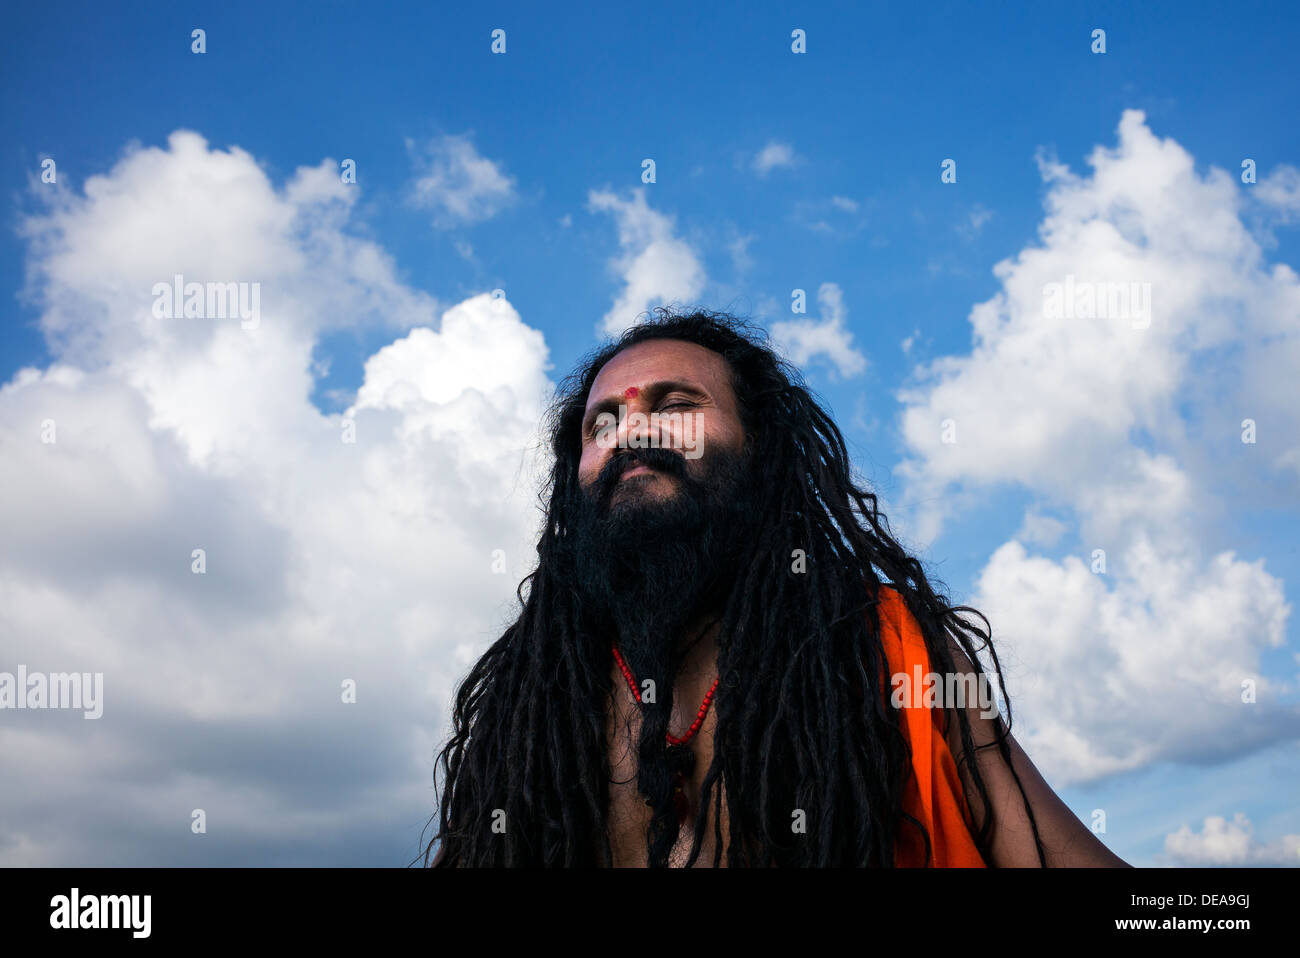 Indian Sadhu in meditation against a blue cloudy sky. India - Stock Image